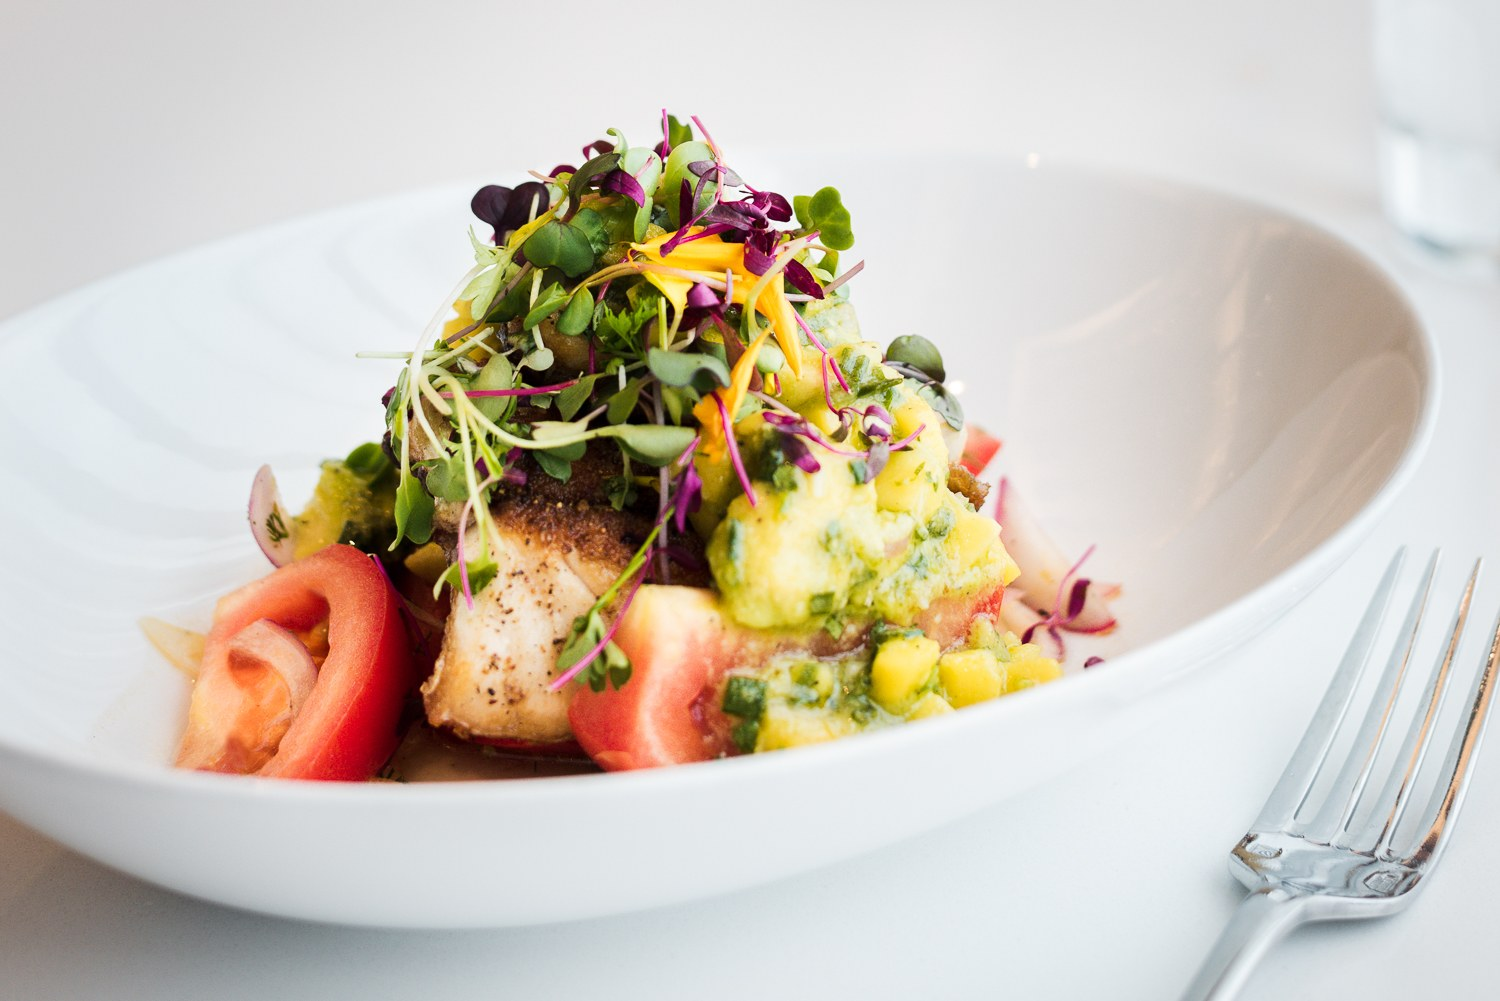 Fish of the day in avocado & mango sauce the table d'hôte menu | Bijou Resto | Bar - Photo credit: Audrey McMahon